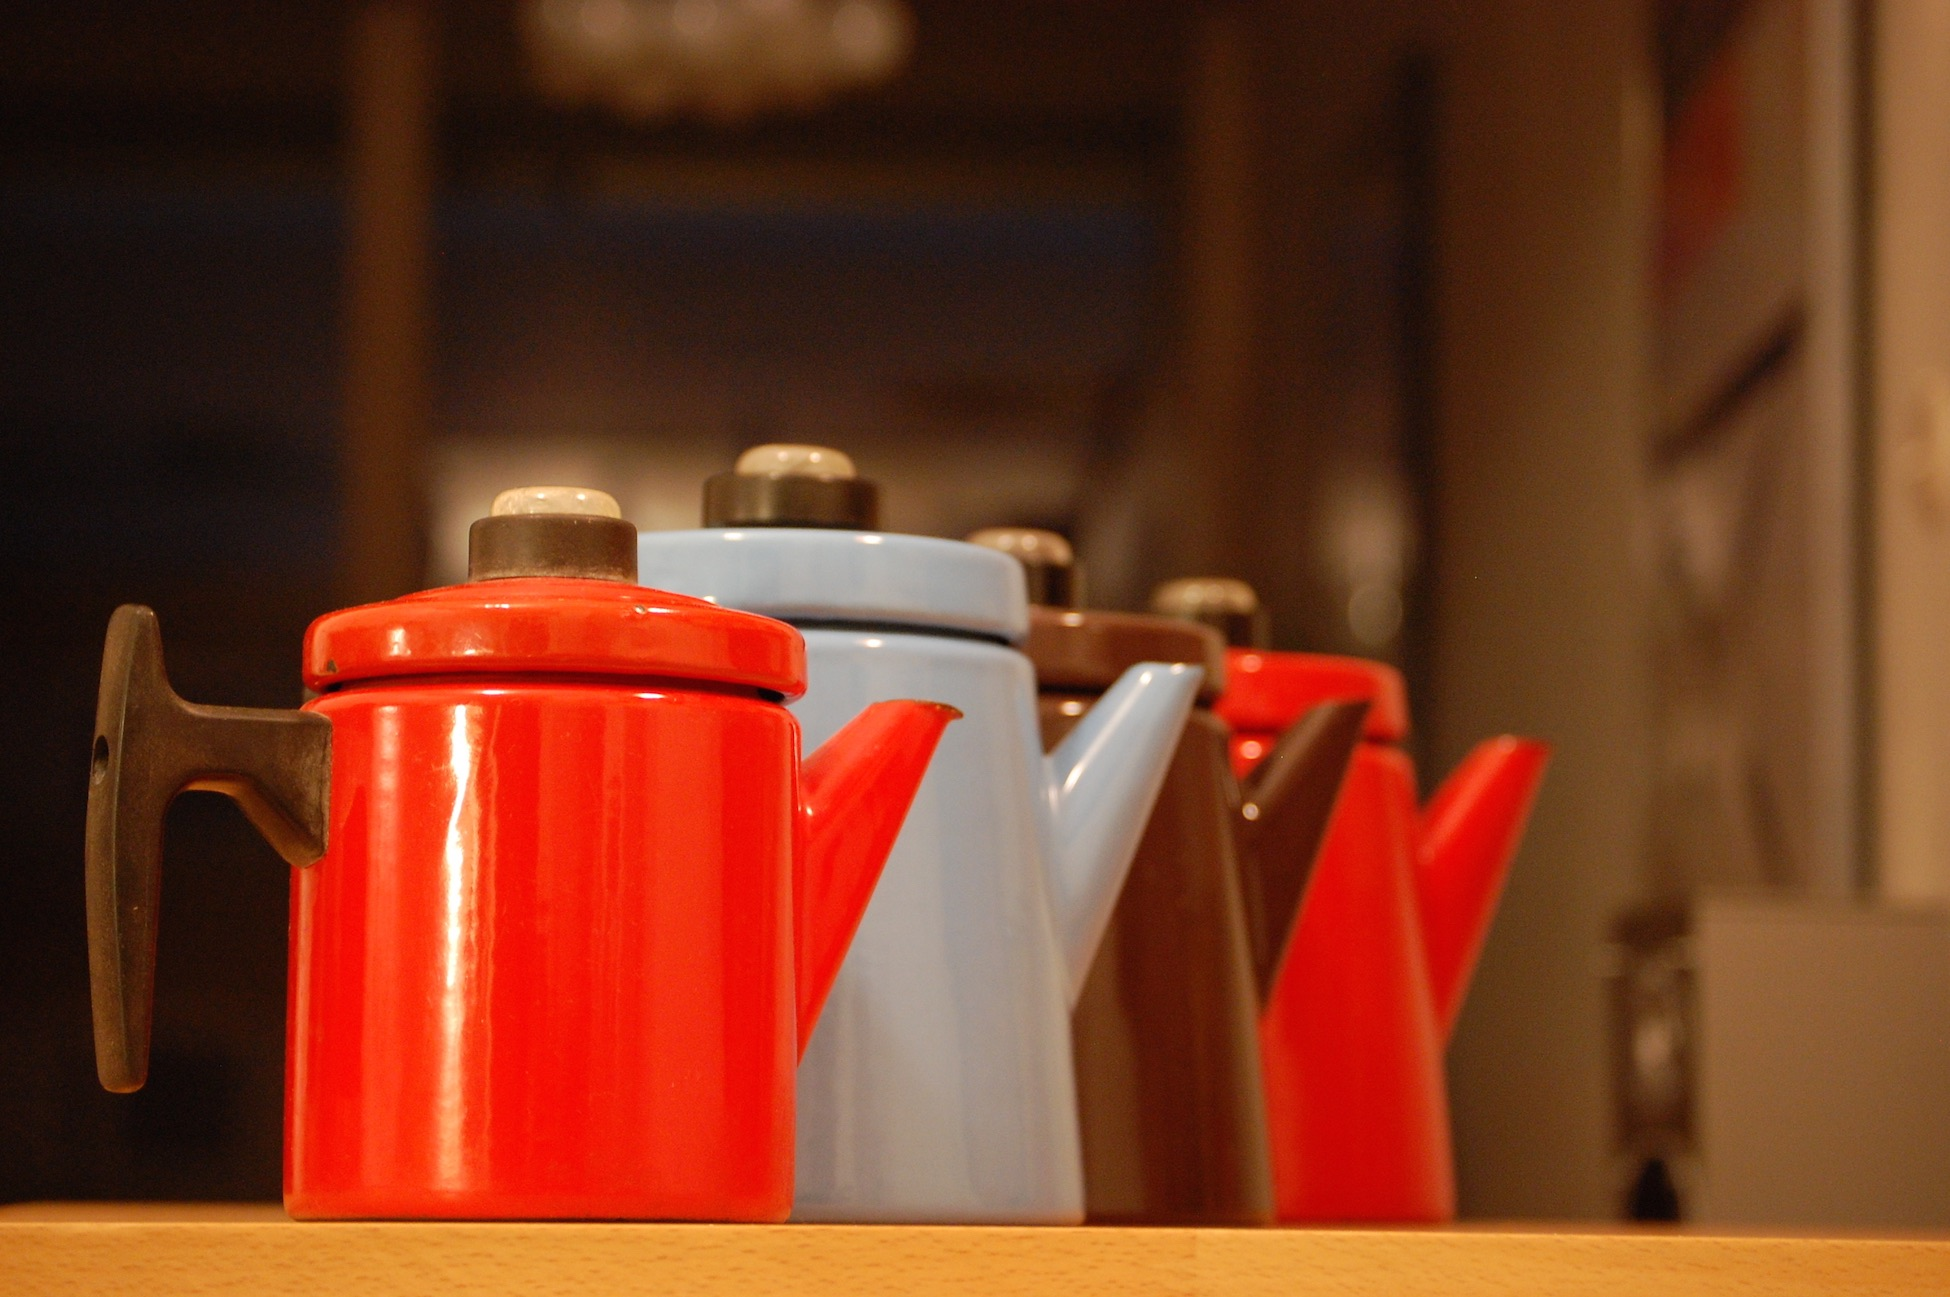 Some different sized and coloured coffee pots by Antti Nurmesniemi, perhaps his most known design.